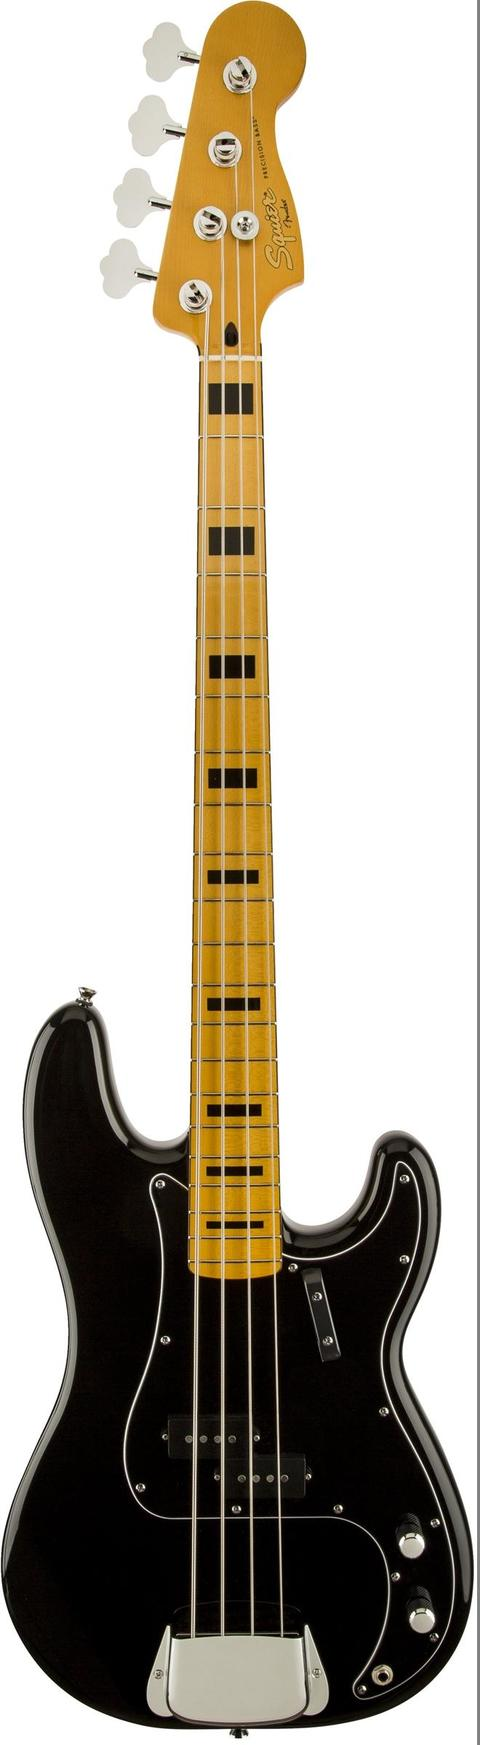 SQUIER CLASSIC VIBE 70S PRECISION BASS BLACK